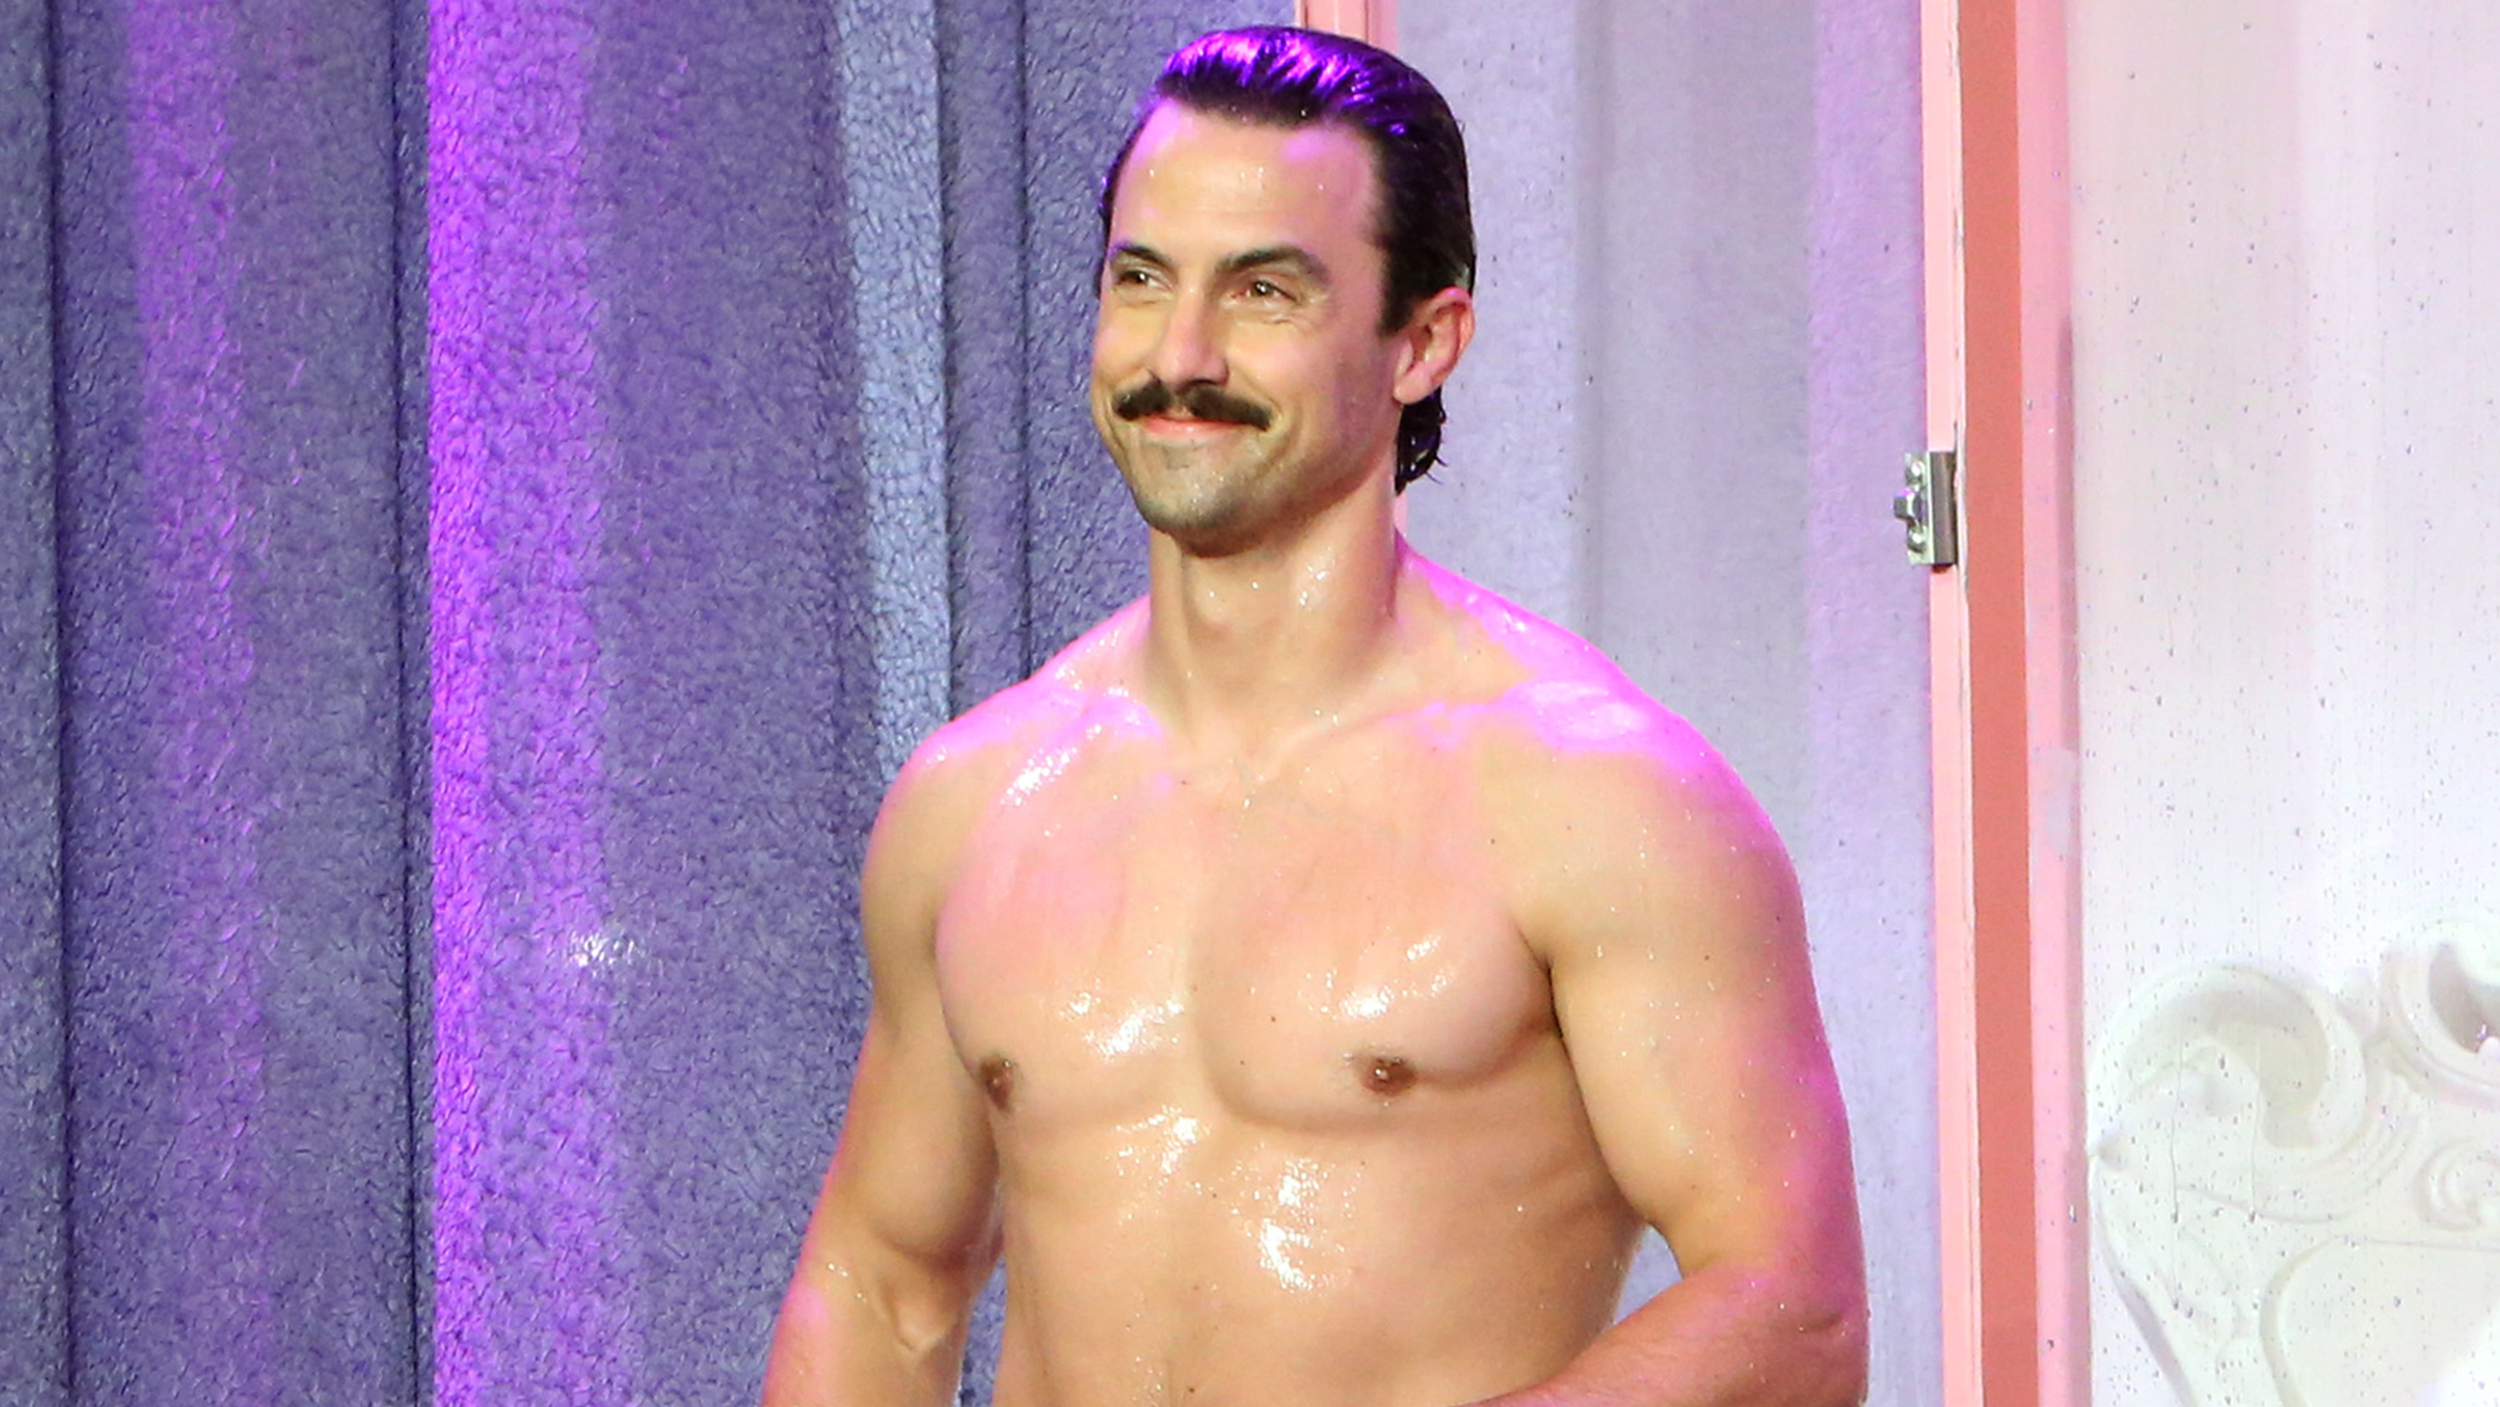 The name Nude pictures milo ventimiglia